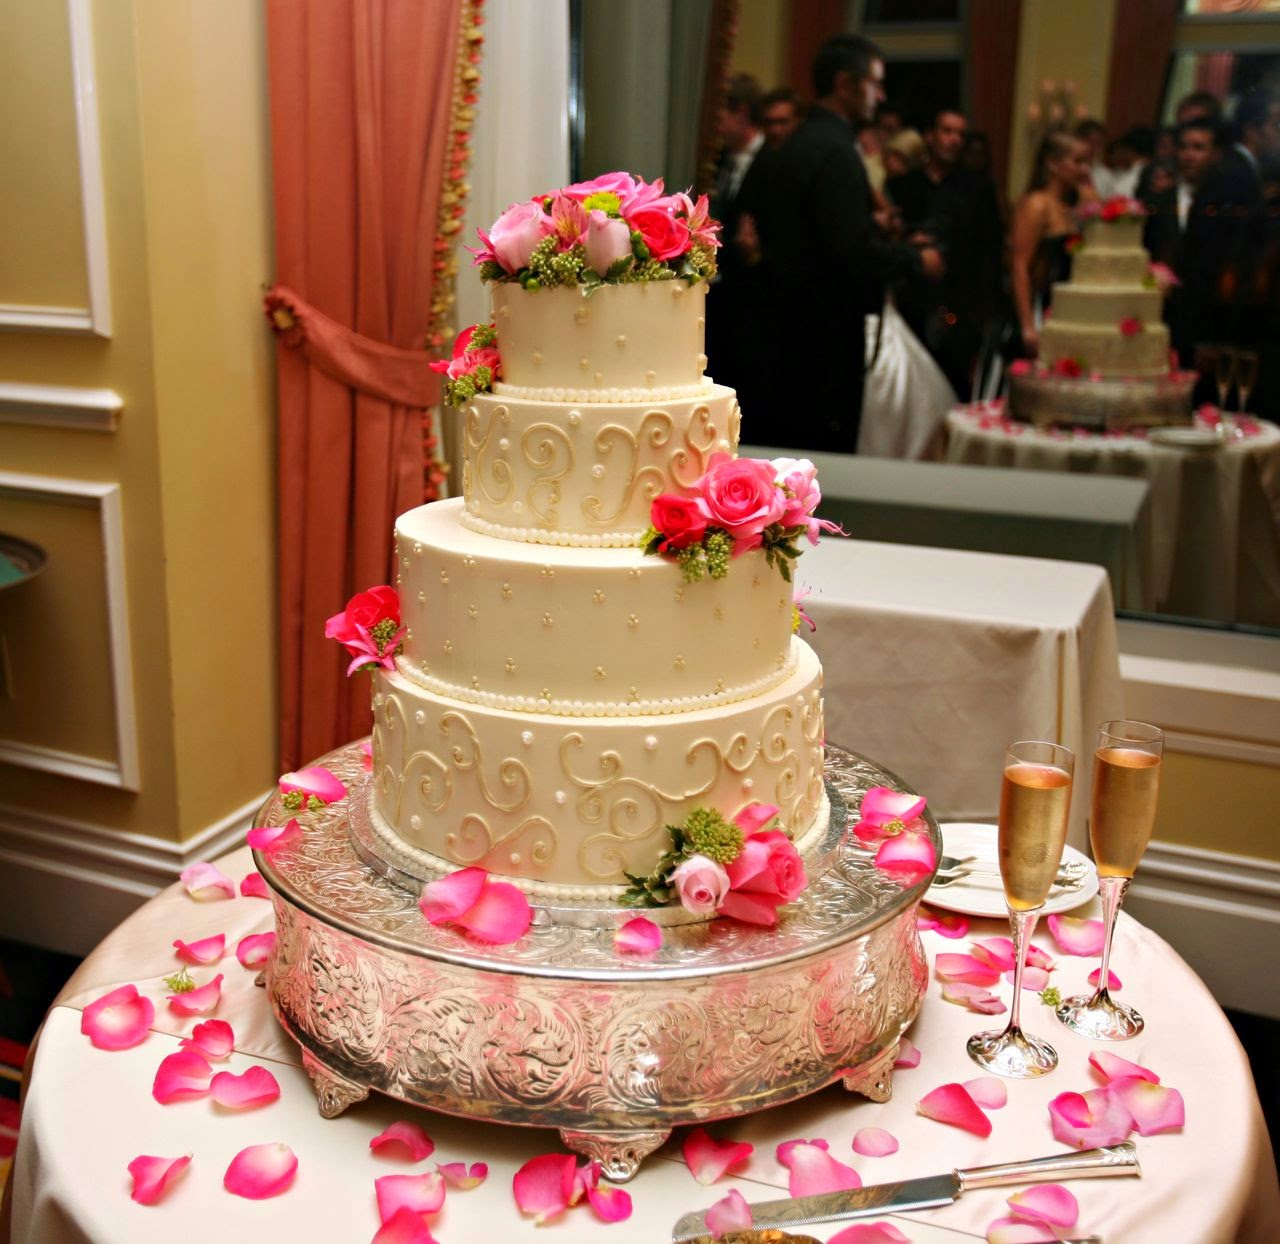 Cake Design Ideas For Wedding : Simple wedding cake design ideas